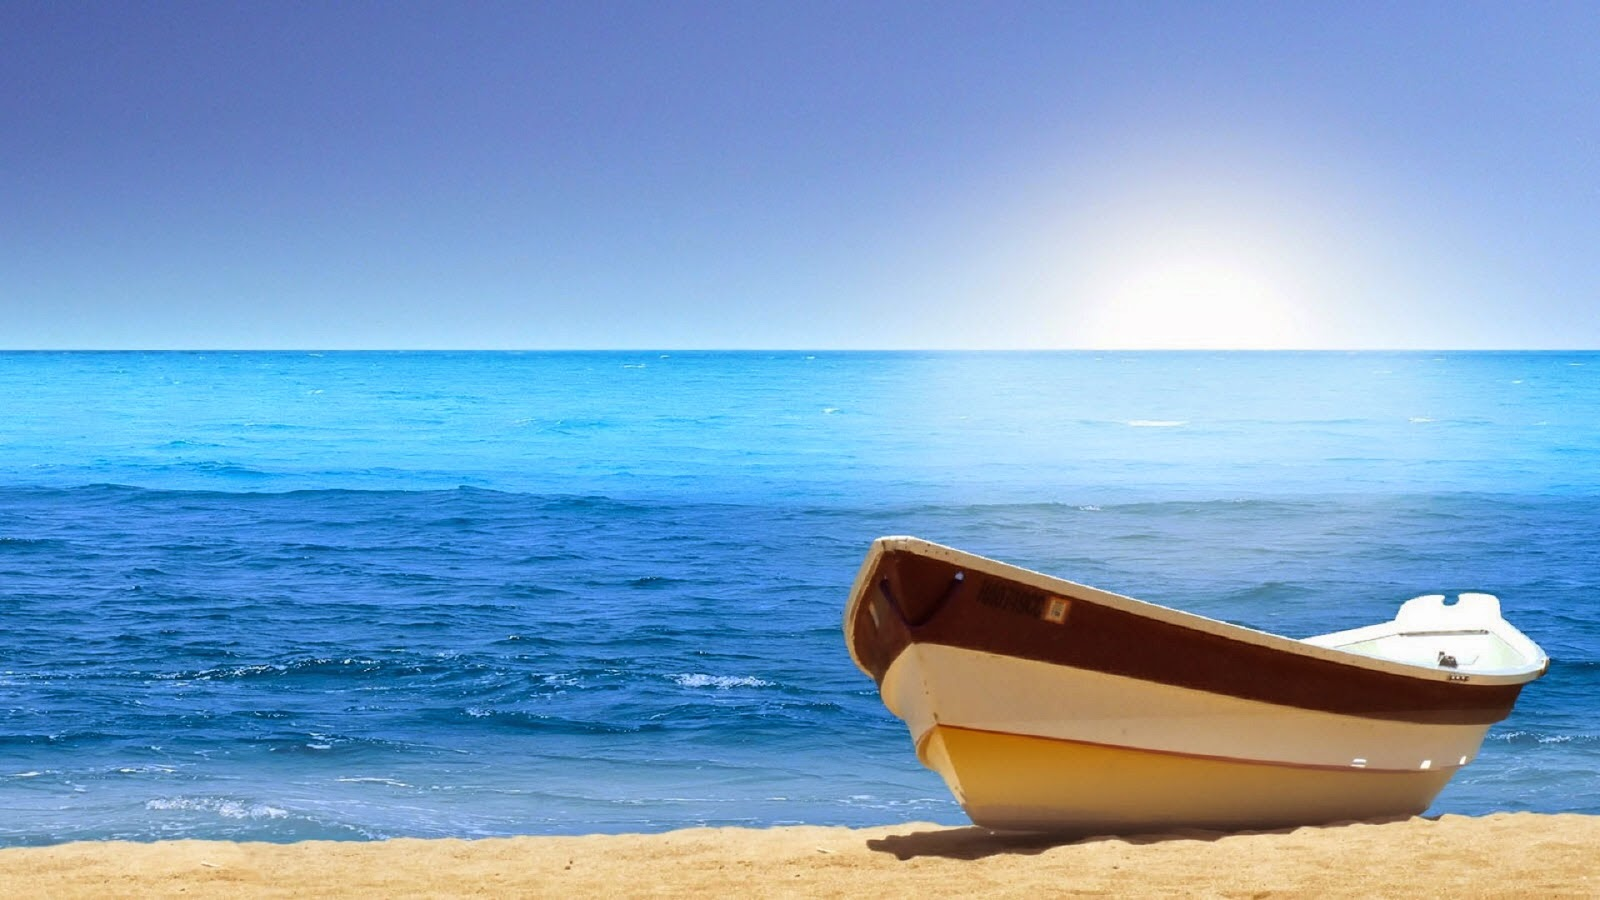 small-boat-on-white-sand-clear-sky-blue-sea-photo-image.jpg